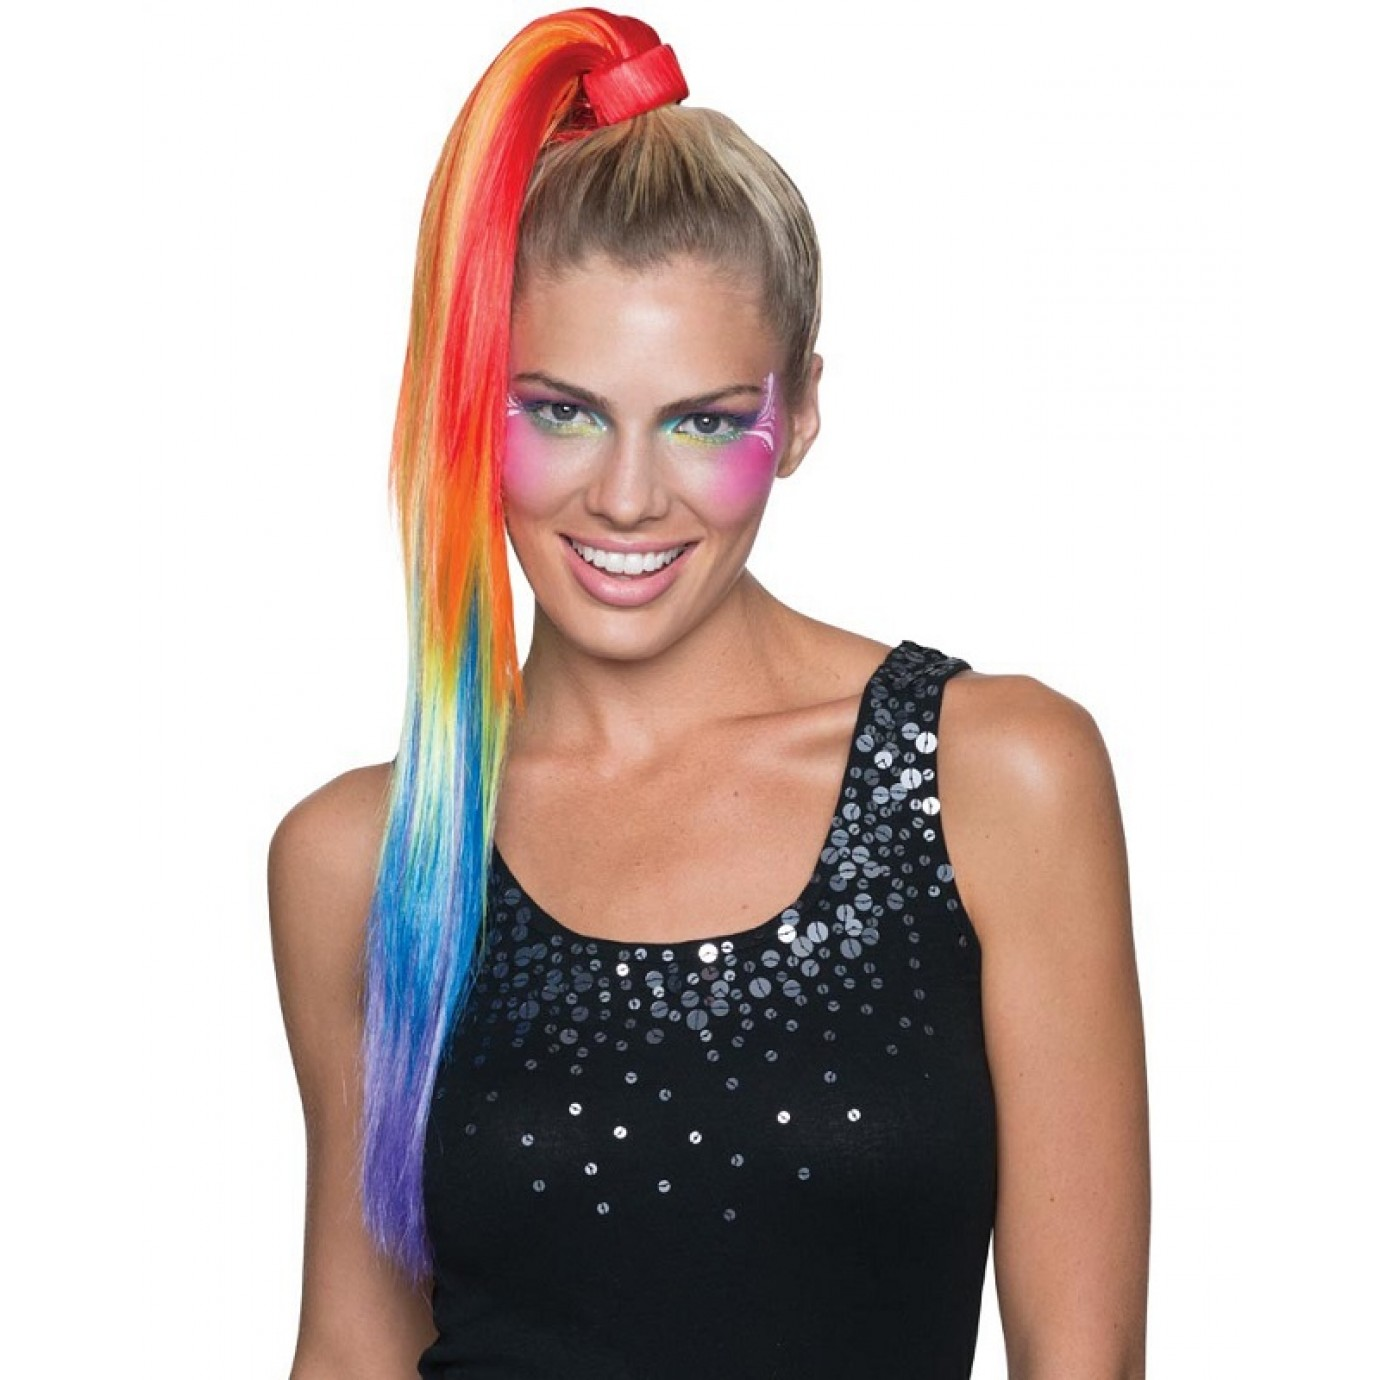 Hair Extension Ponytail Rainbow Wigs Body Parts Cosmetics